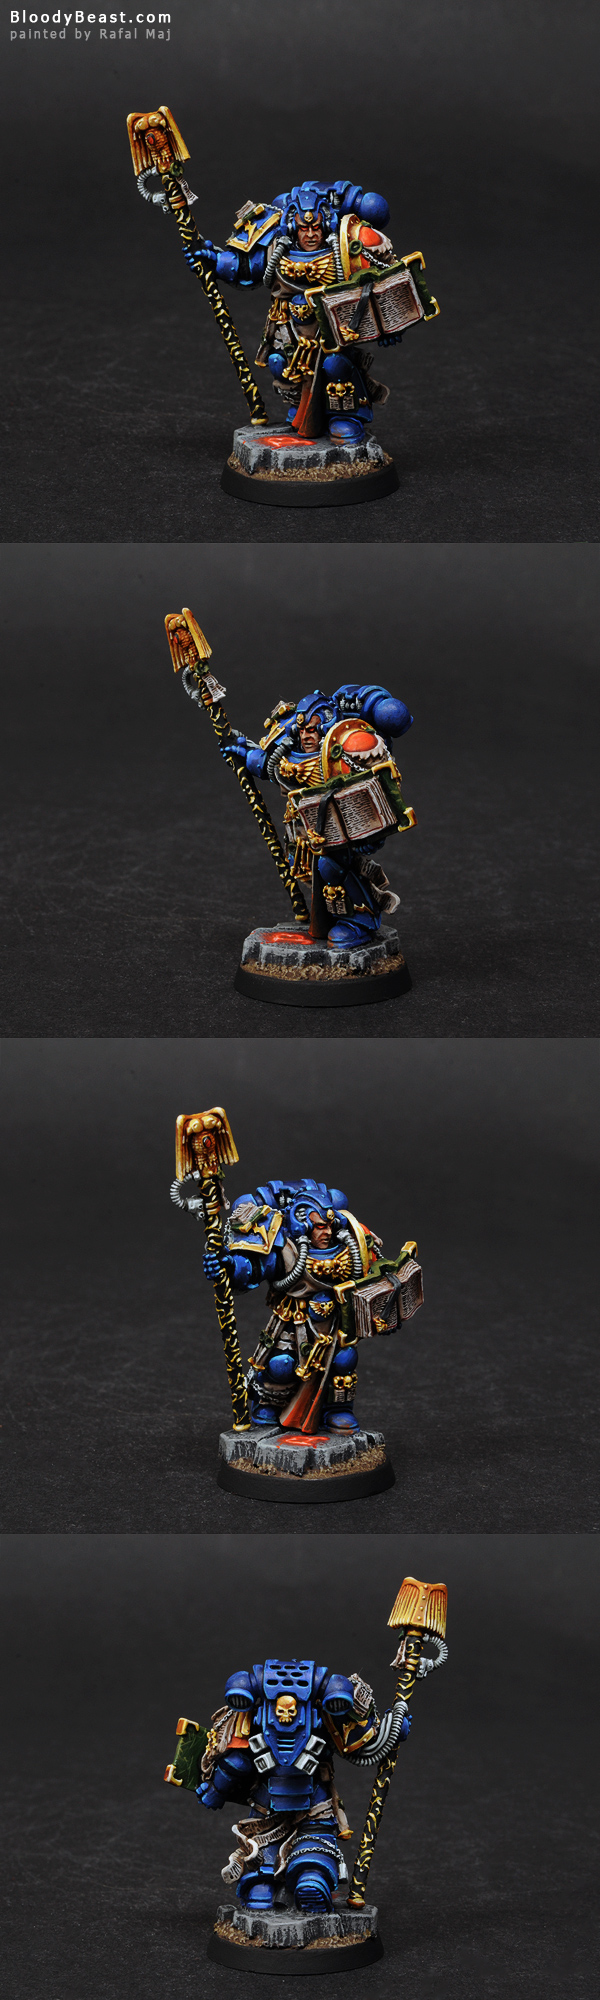 Astral Tiger Librarian painted by Rafal Maj (BloodyBeast.com)